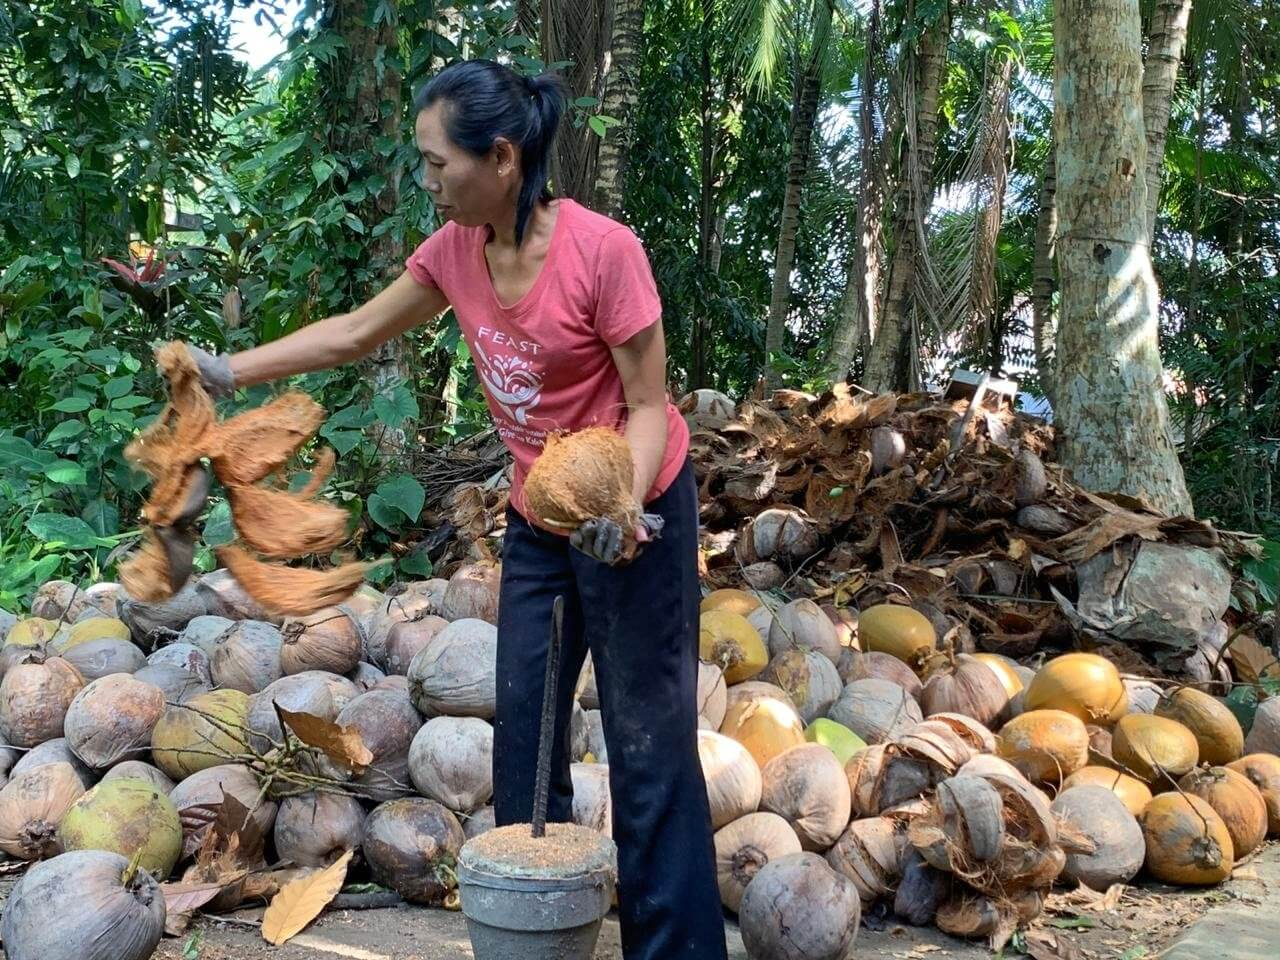 Indonesian woman working with coconuts